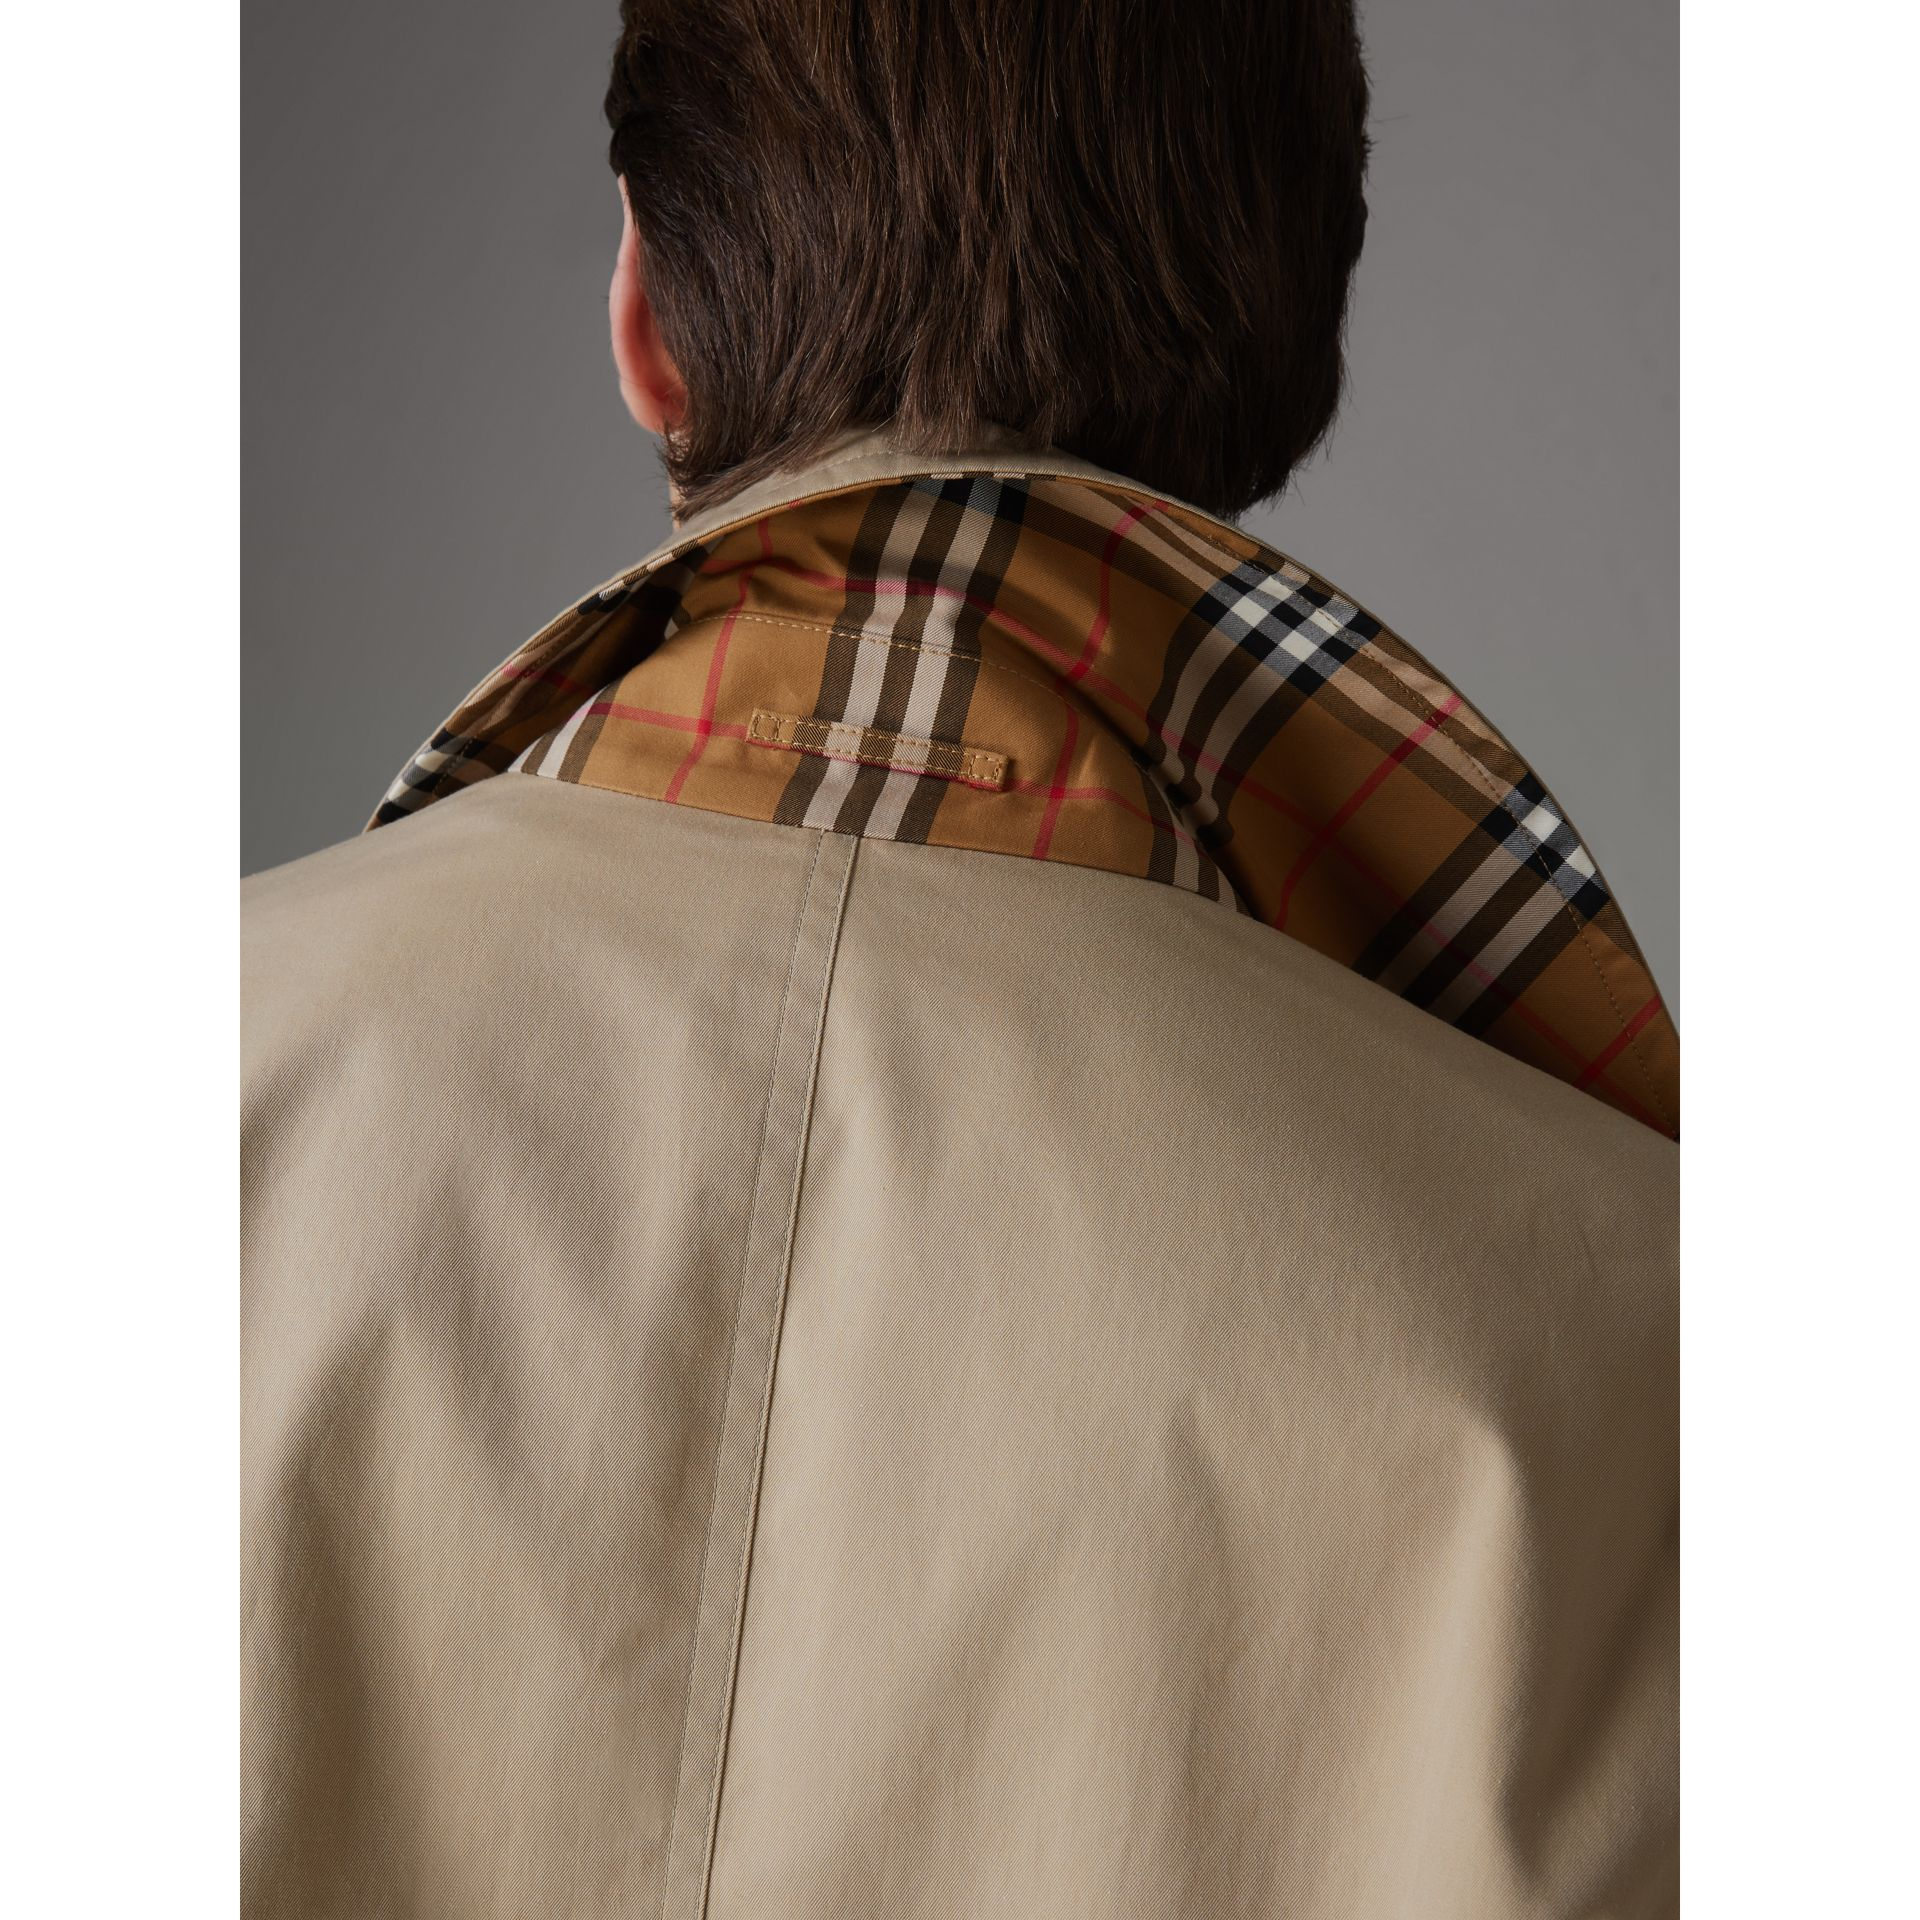 Veste Harrington à motif Rainbow Vintage check (Jaune Antique/arc-en-ciel) - Homme | Burberry - photo de la galerie 5